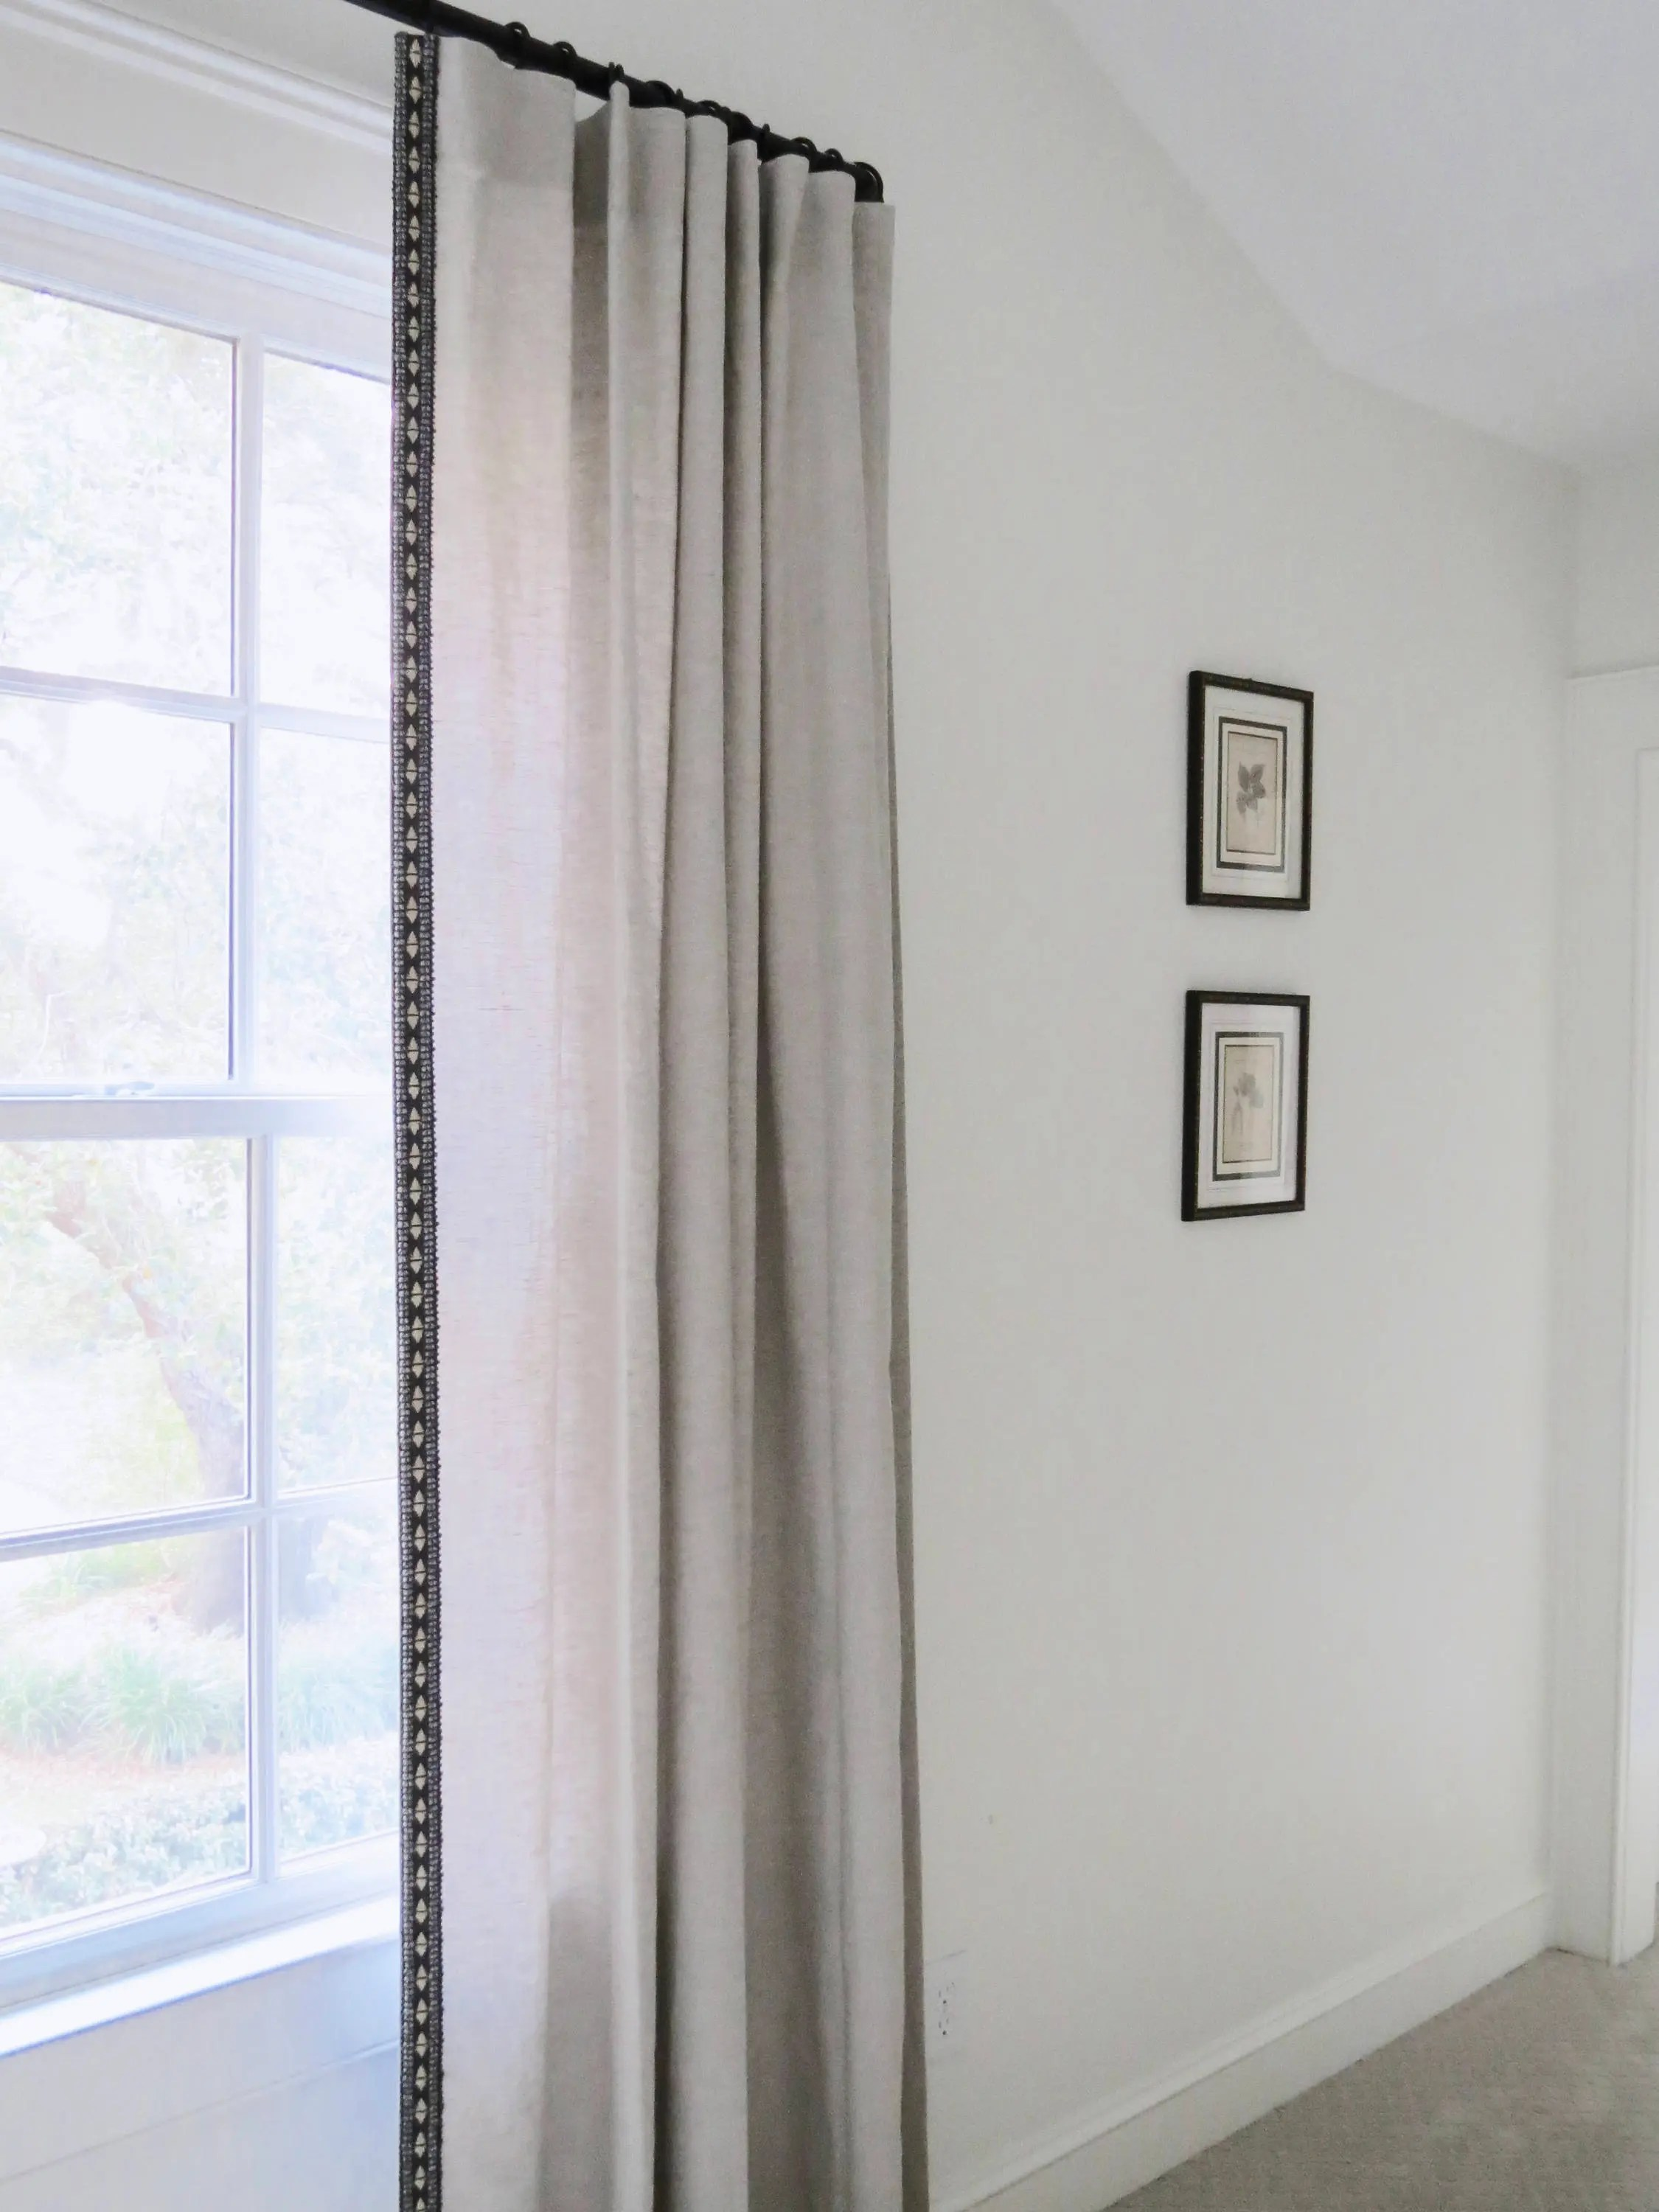 Ribbon Trim Curtains Linen Curtains With Trim Beige Linen Tan Linen Dark Gray Trim Tape Boho Curtains Bedroom Curtains Natural Linen Curtains Border Ribbon Trim